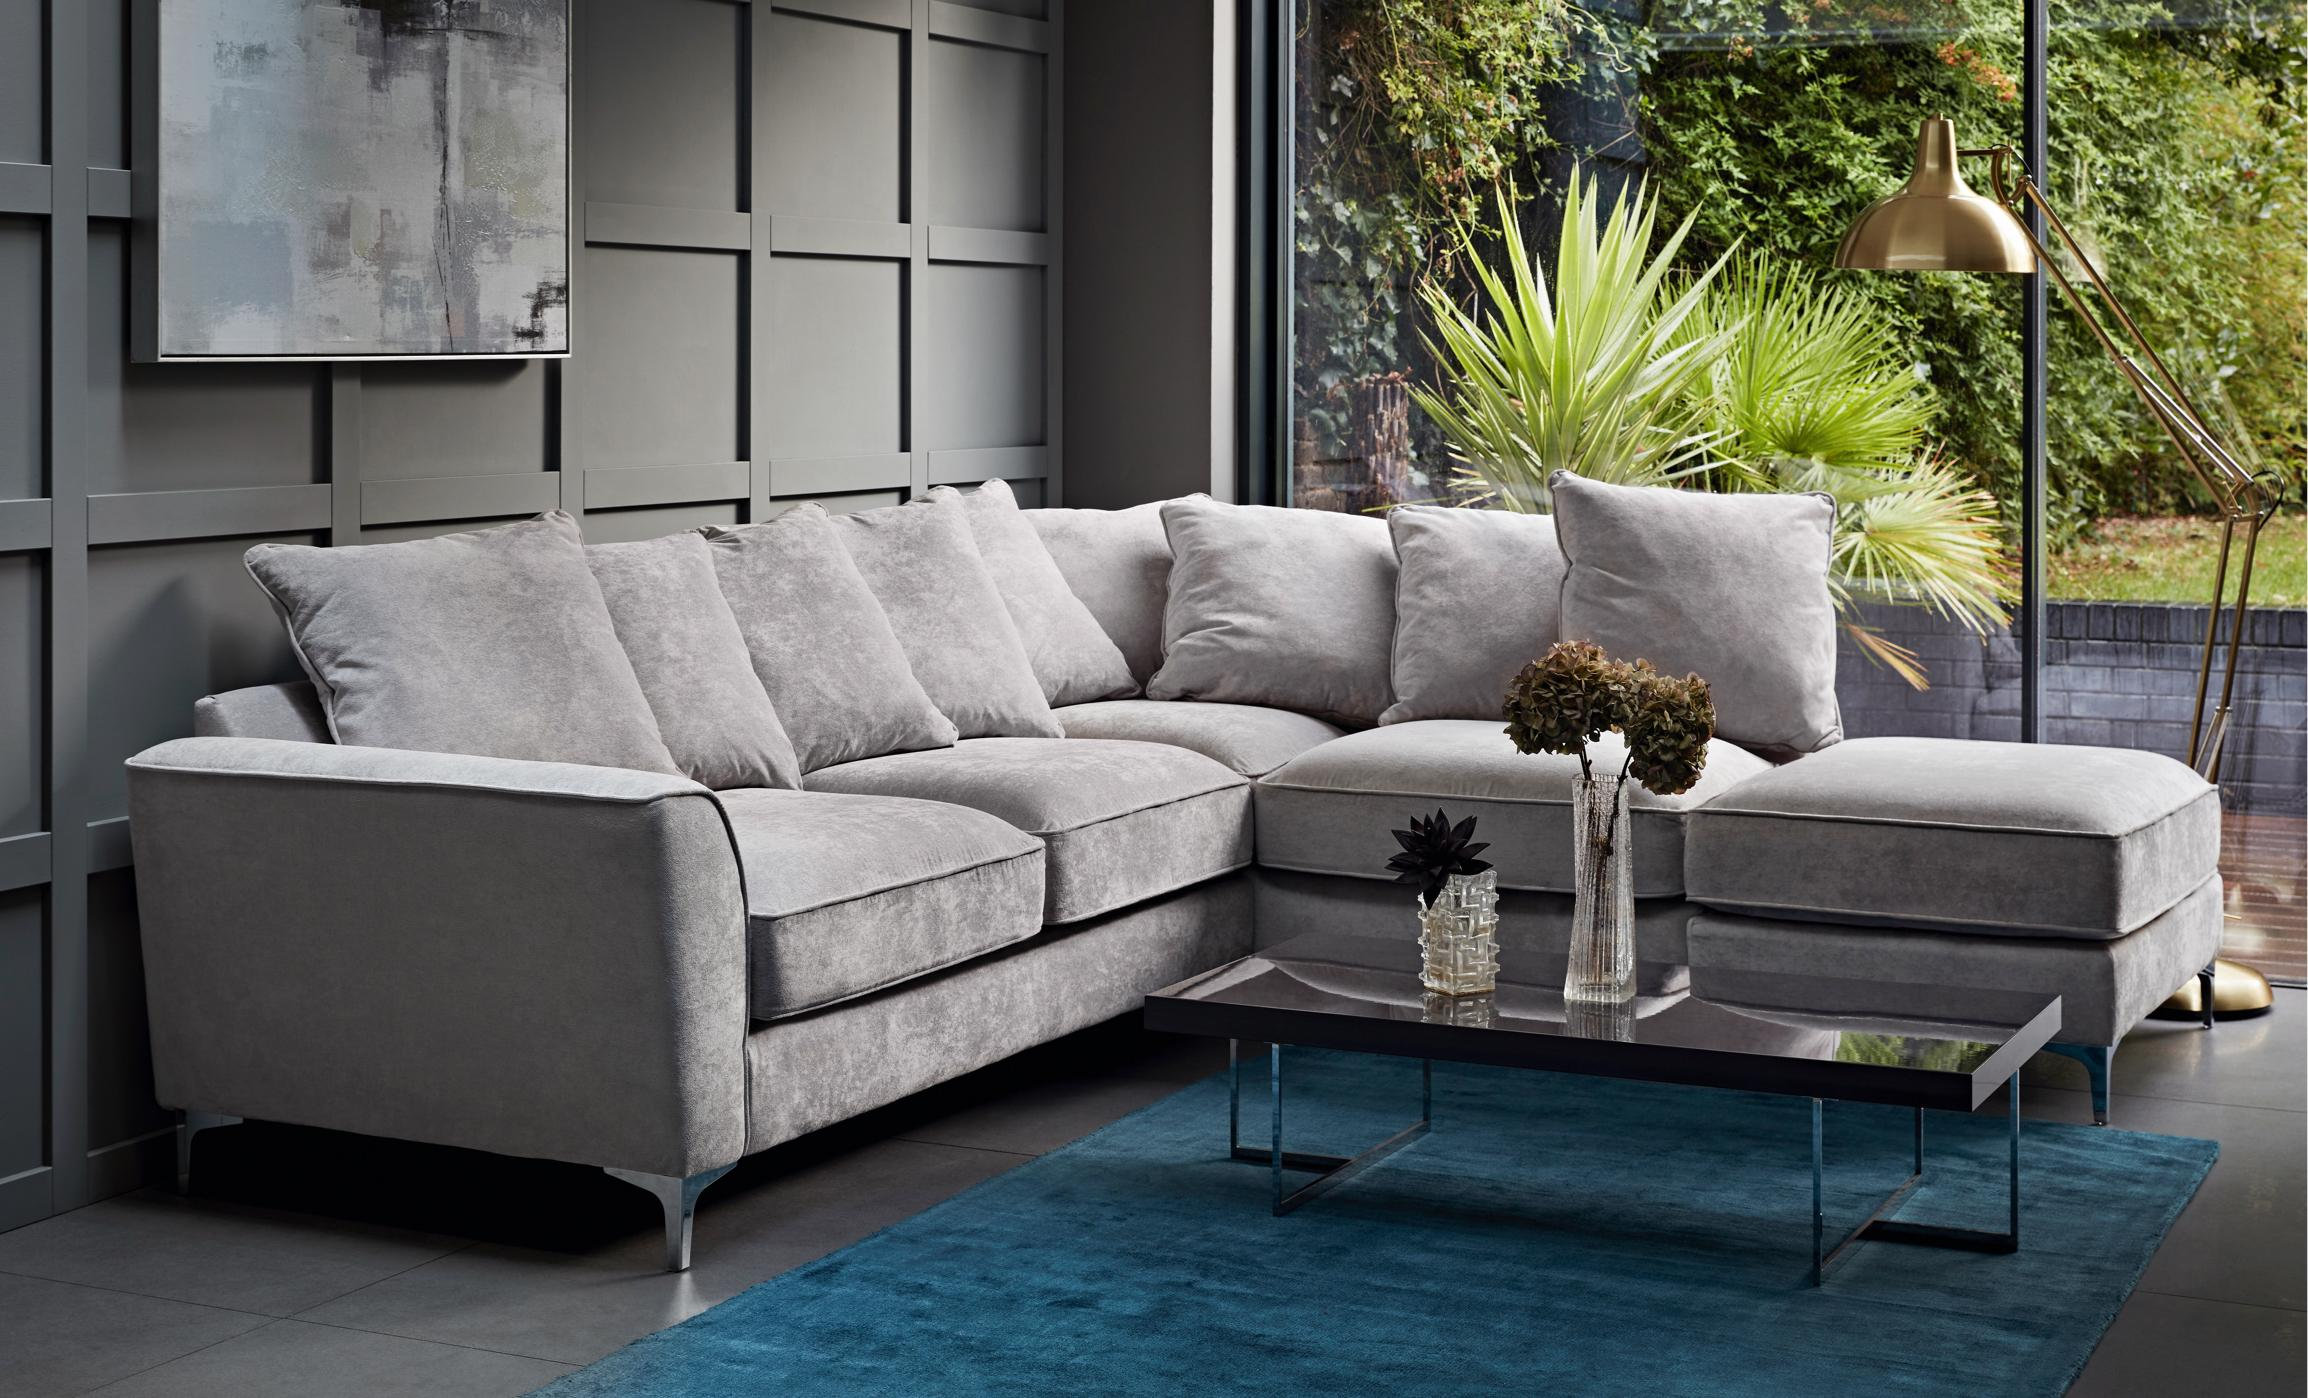 6 Grey And Blue Living Room Ideas Furniture Village Furniture Village